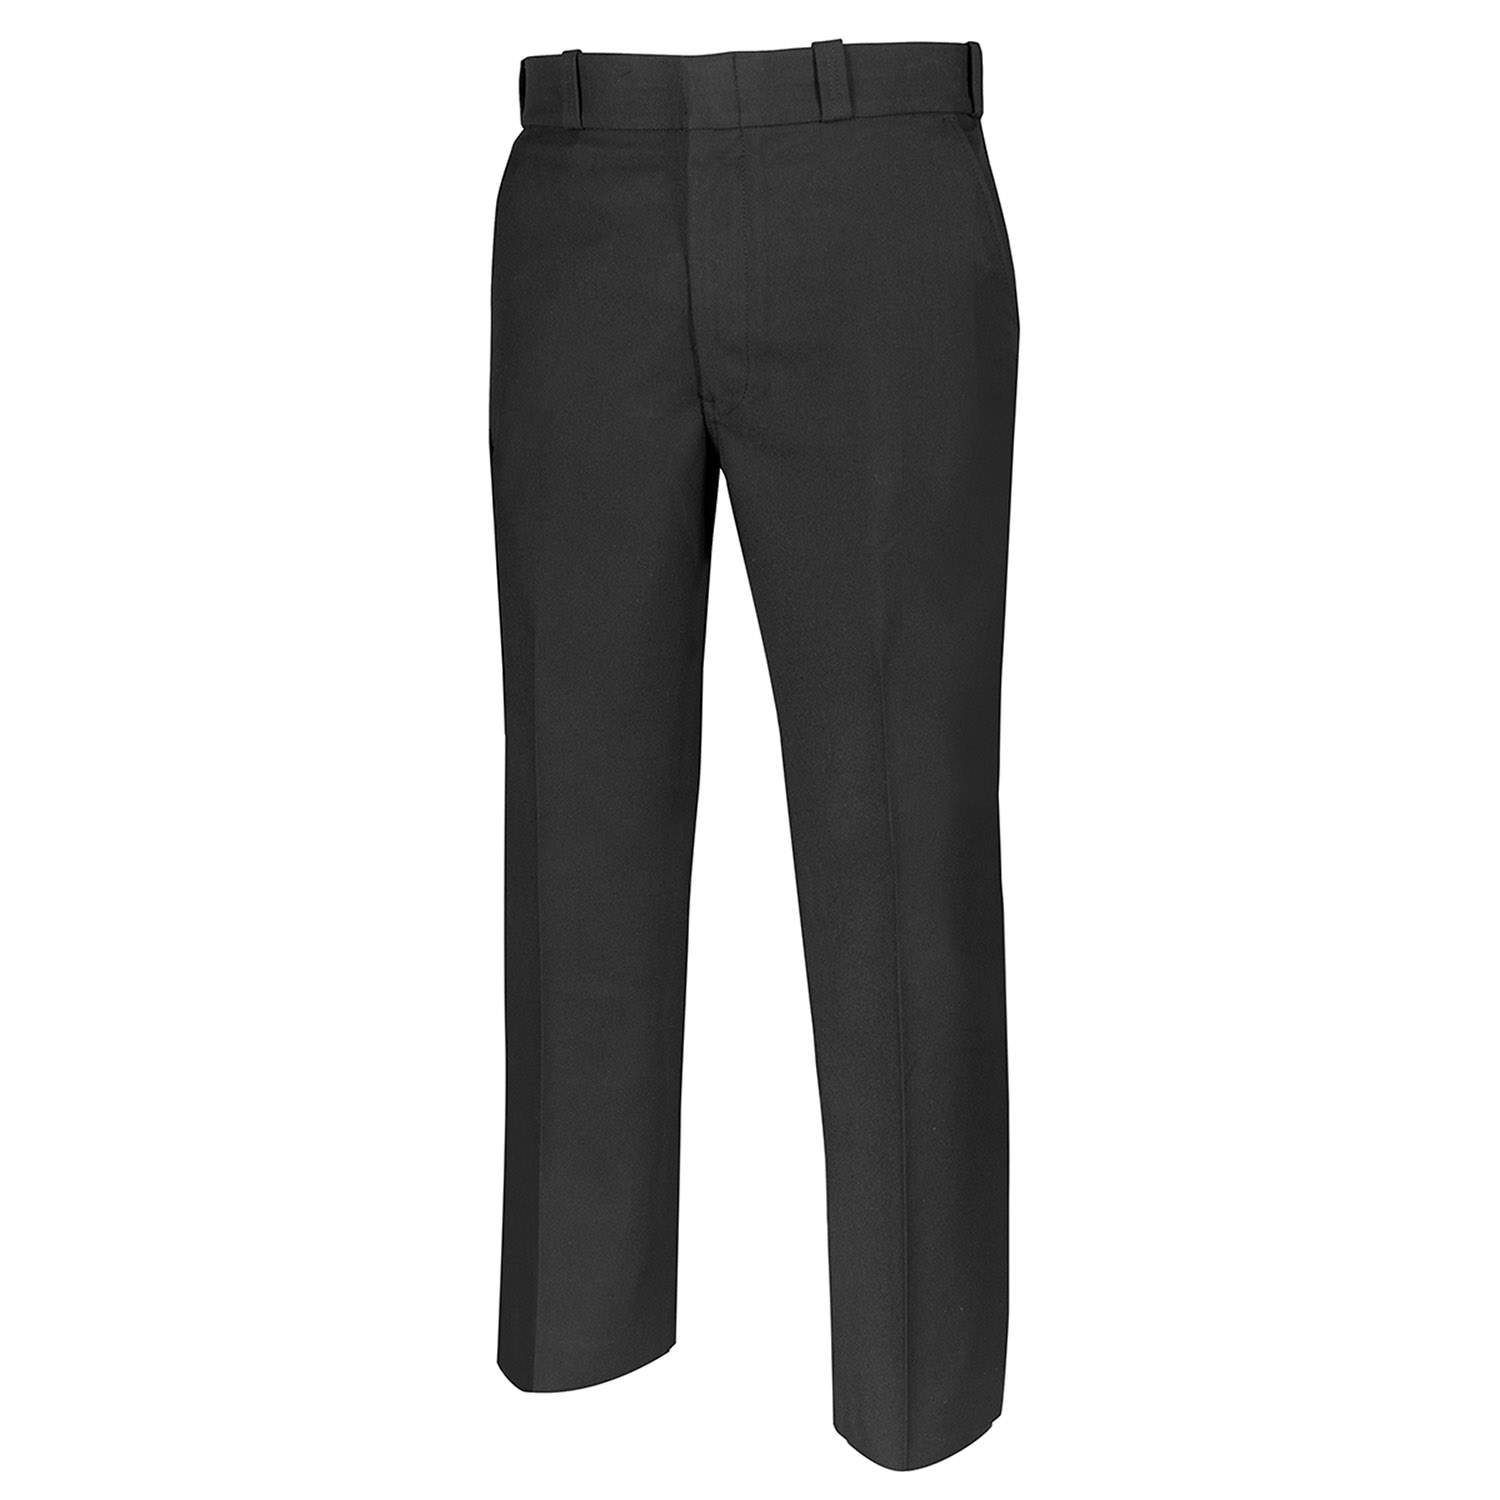 Elbeco Duty Maxx Men's 4-Pocket Trousers